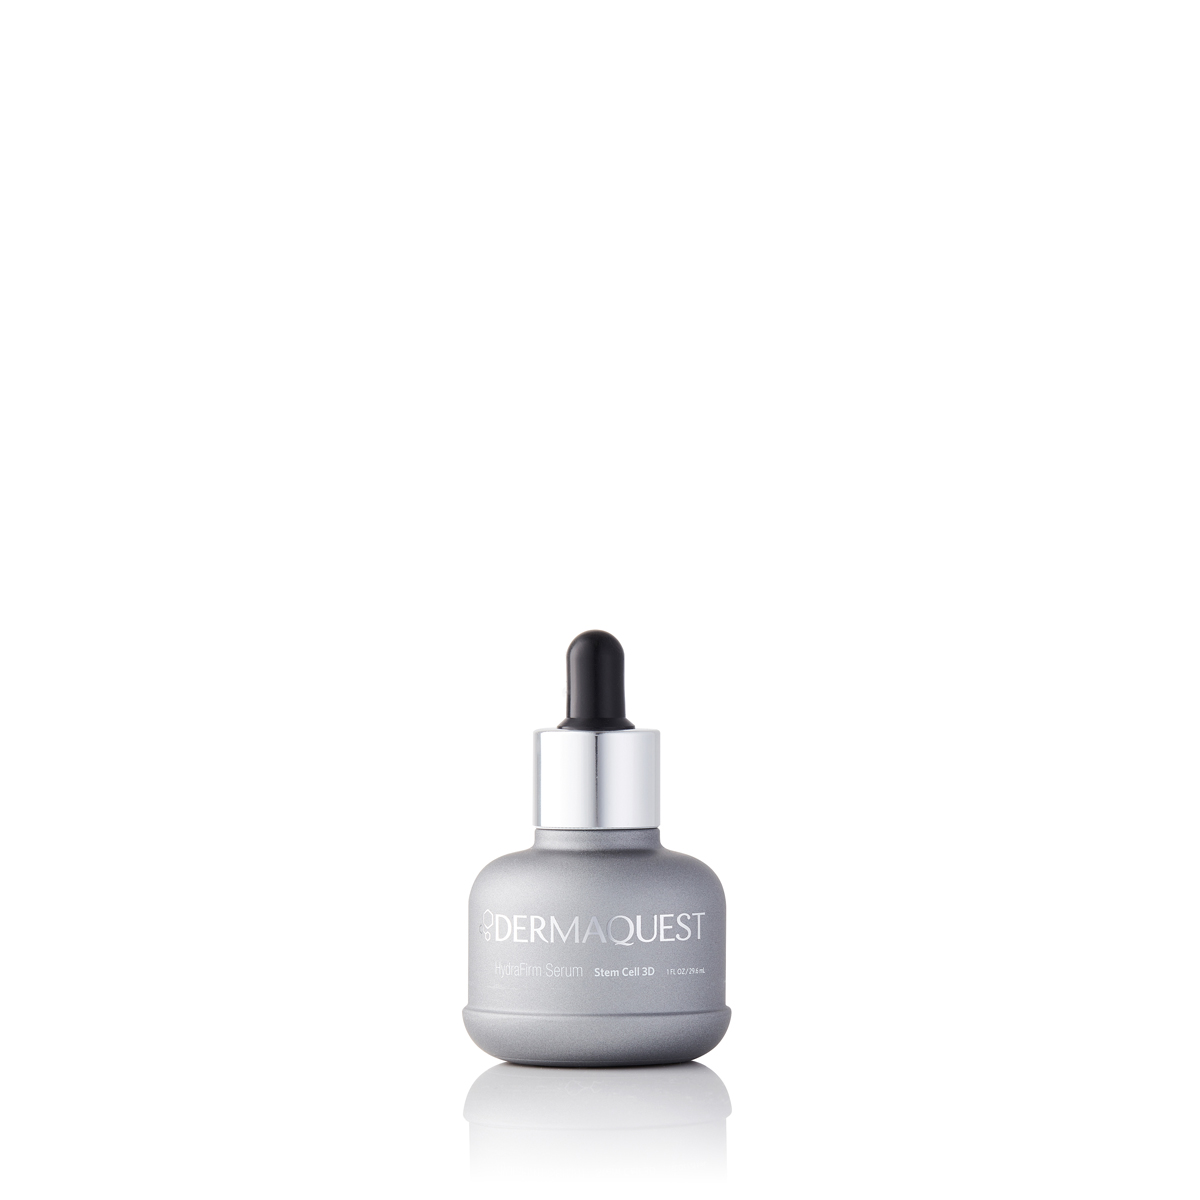 Stem Cell 3D Hydrafirm Serum – Stem Cell 3D